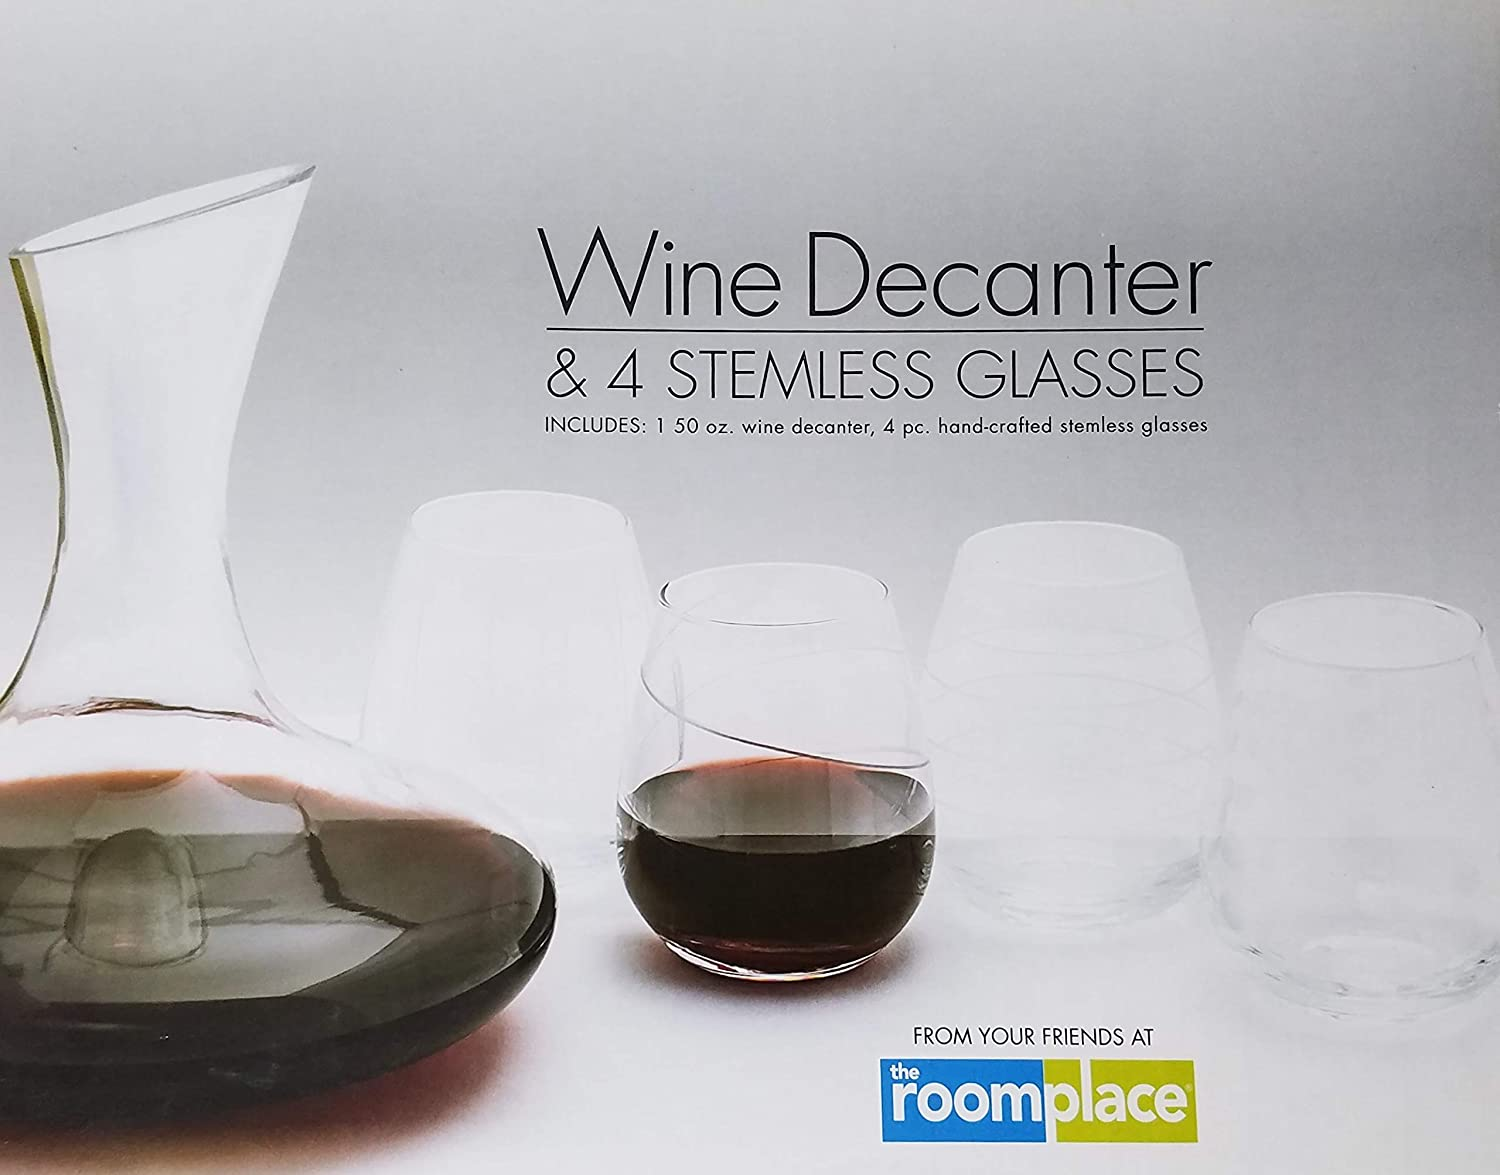 Wine Decanter & 4 Creatively Designed Stemless Wine Glasses From Your Friends at the RoomPlace